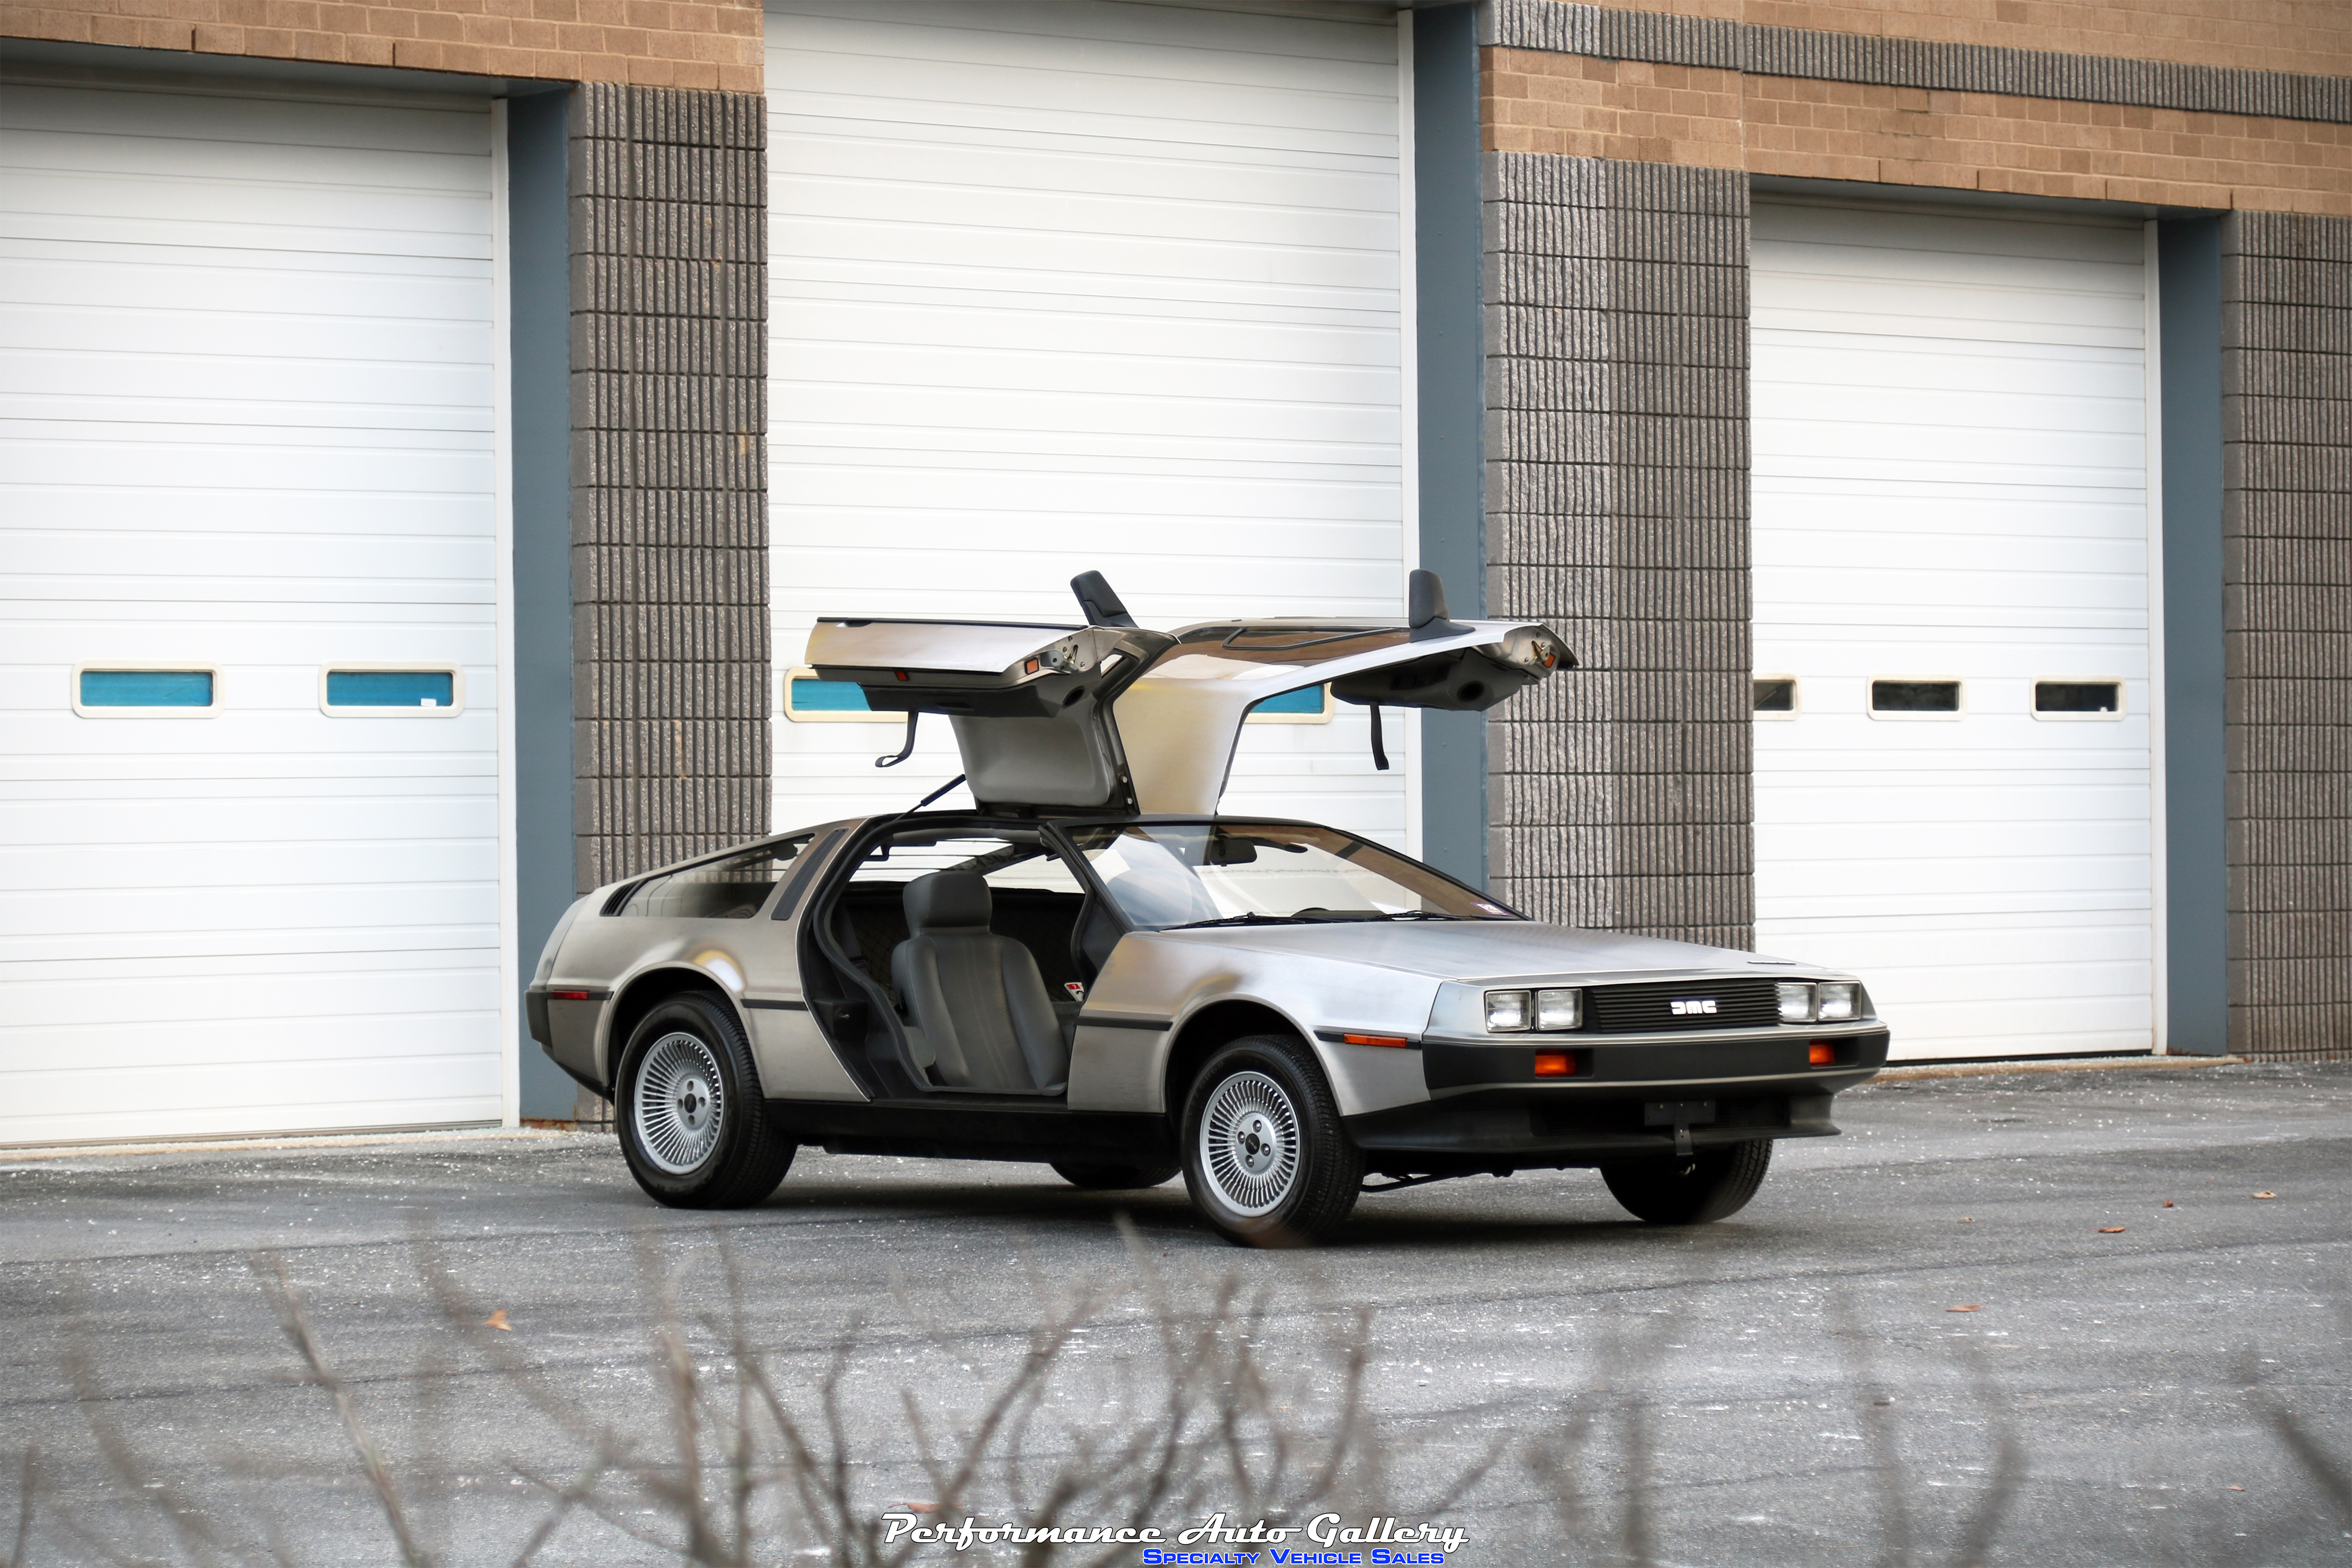 Nerd out with this DeLorean DMC-12 with just 1,634 original miles!